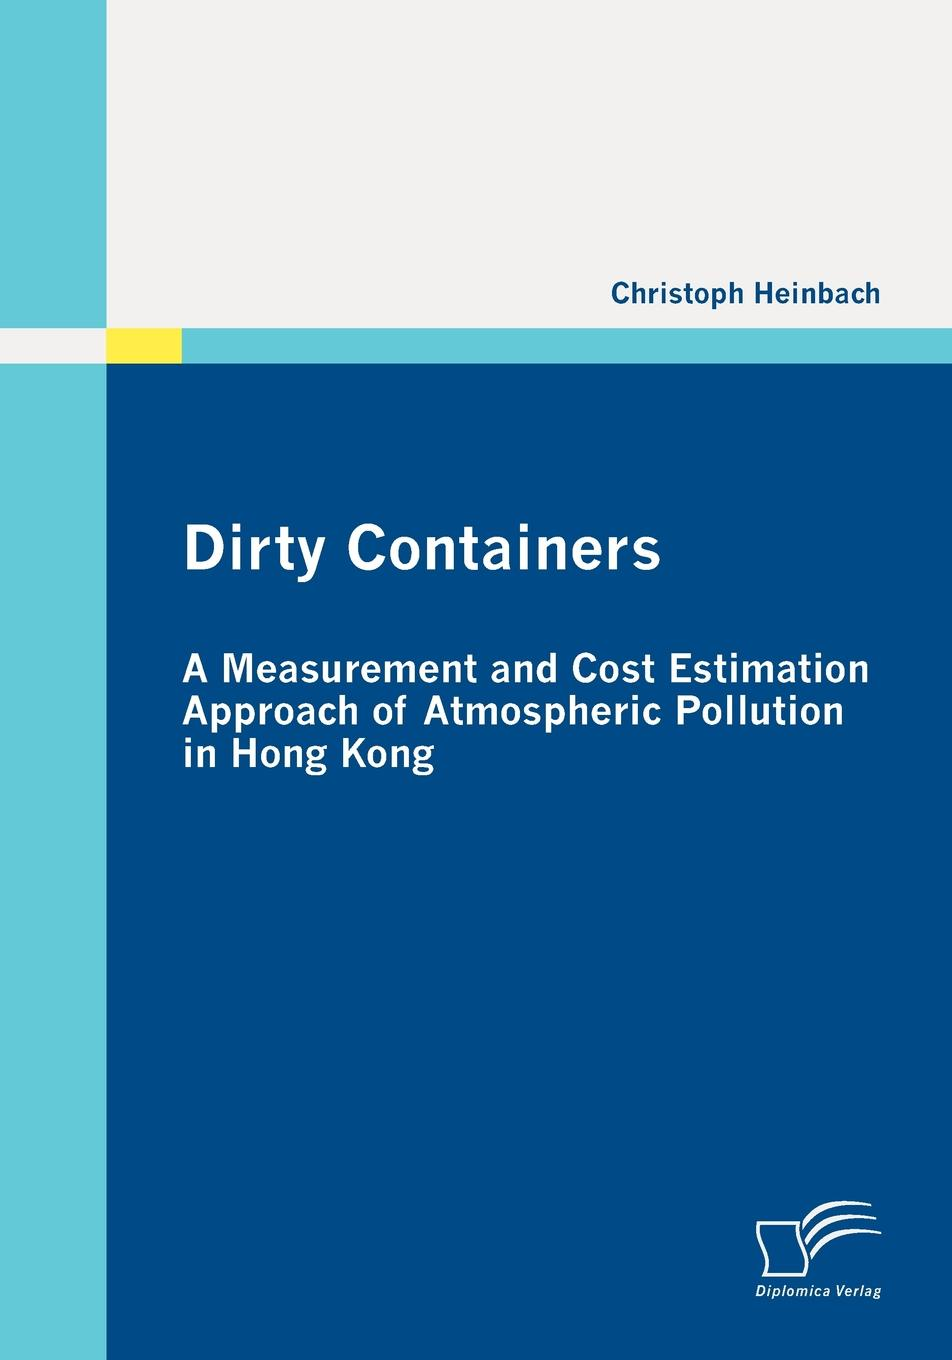 Christoph Heinbach Dirty Containers. A Measurement and Cost Estimation Approach of Atmospheric Pollution in Hong Kong недорго, оригинальная цена